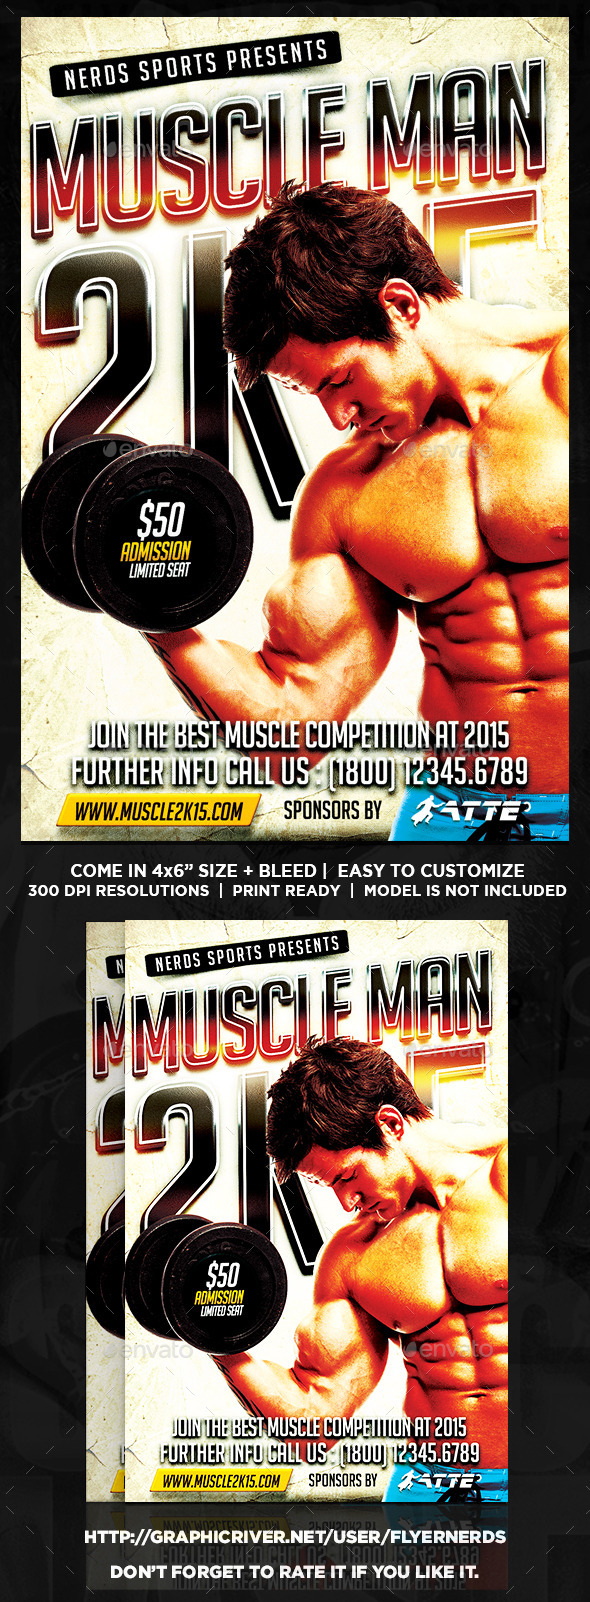 GraphicRiver Muscle Man 2K15 Sports Flyer 9800398